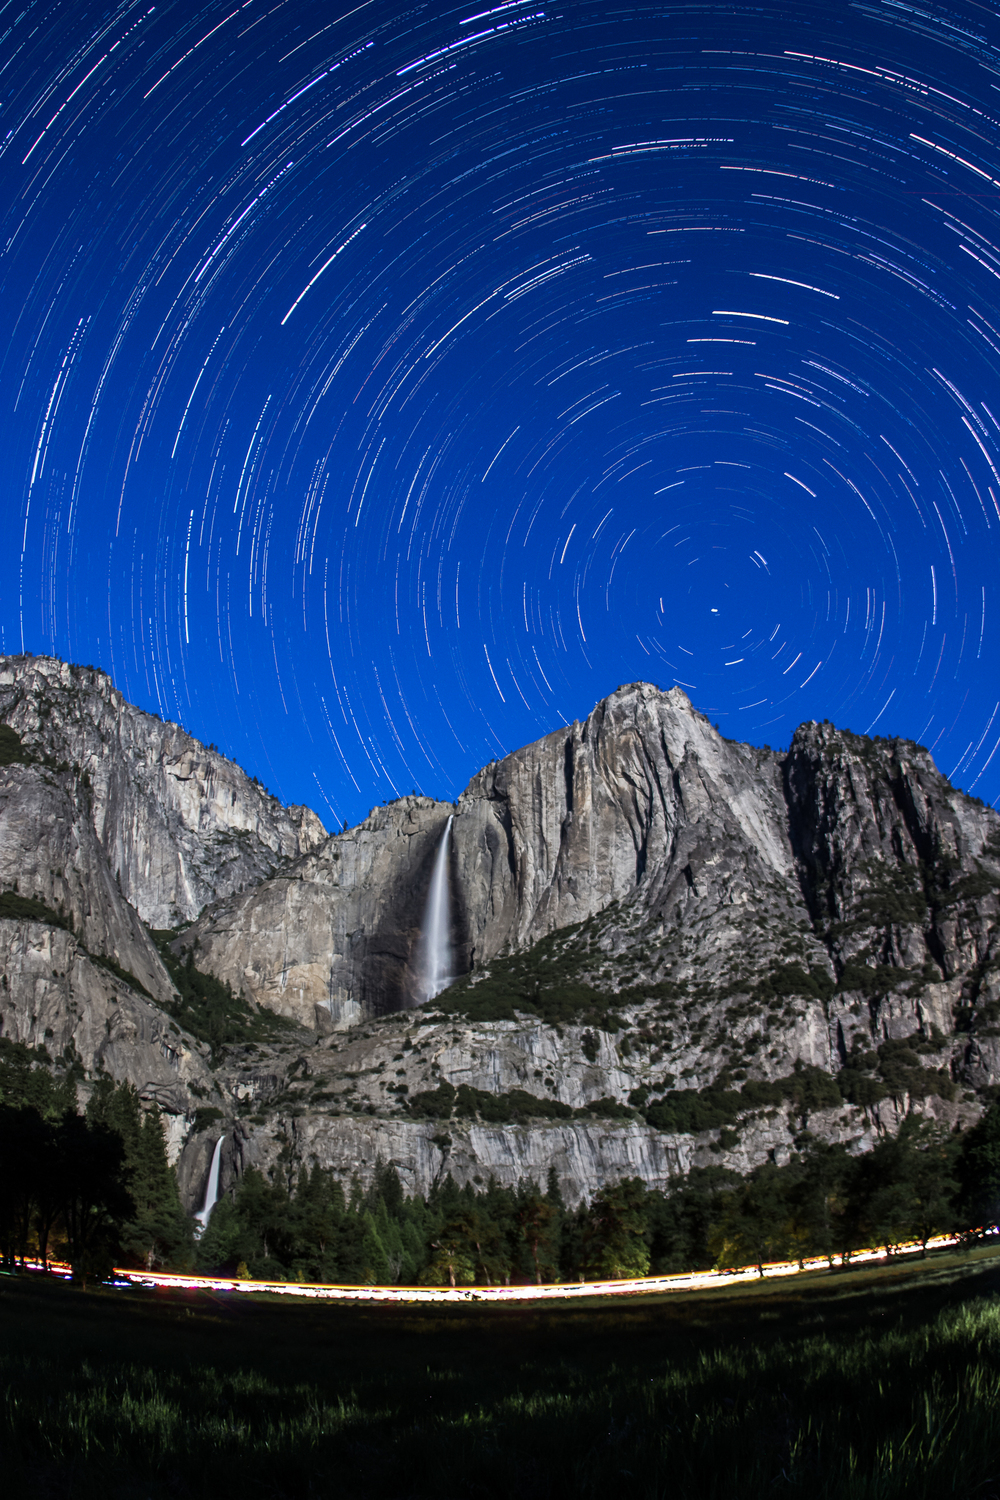 StarStaX_yosemite-8003-yosemite-8175_lighten.jpg